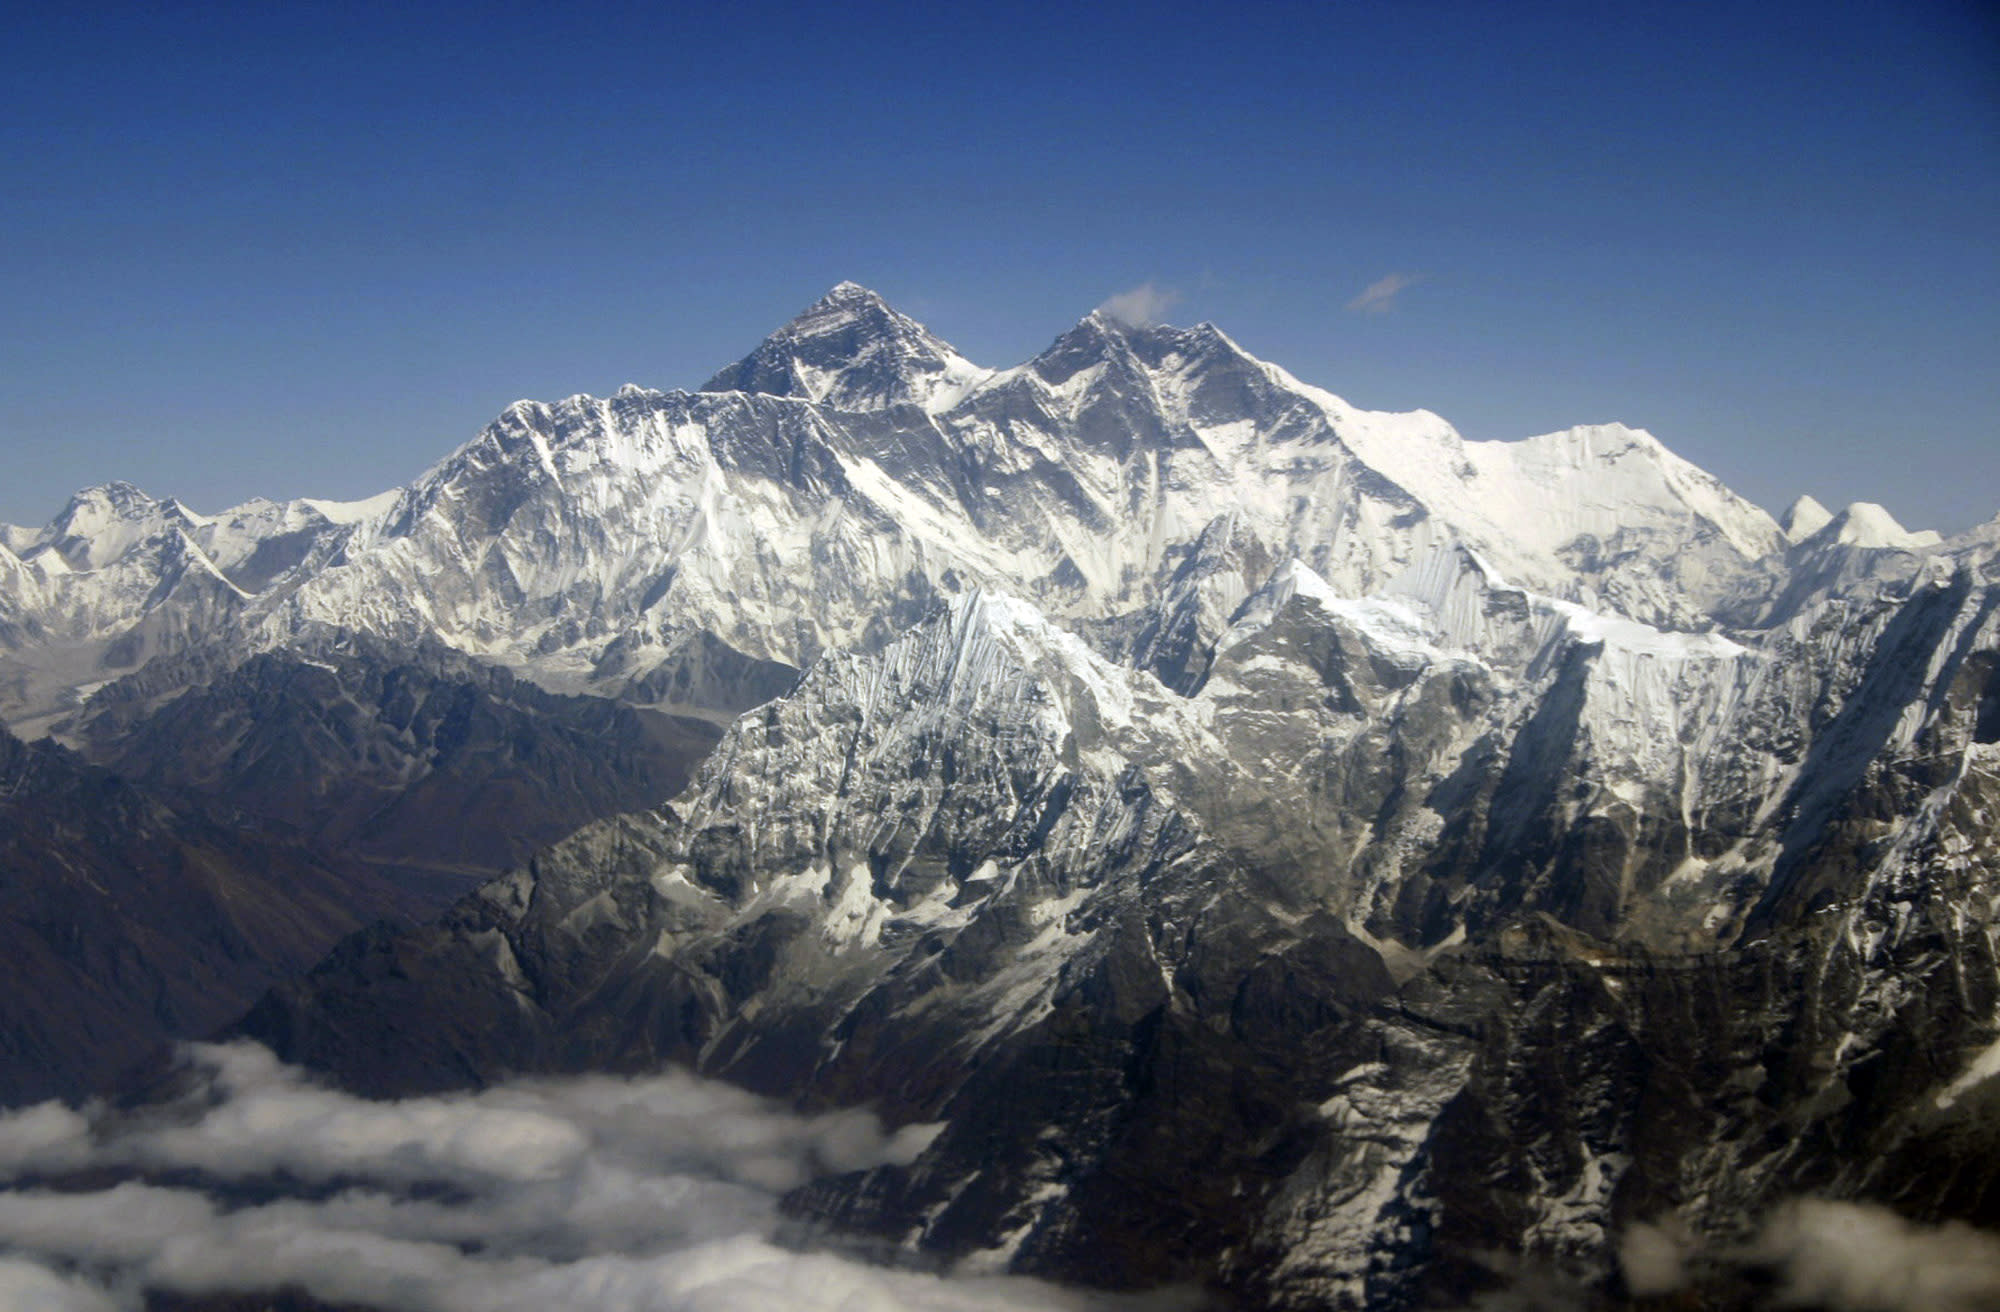 8 dead, more missing in quake-triggered avalanche on Everest